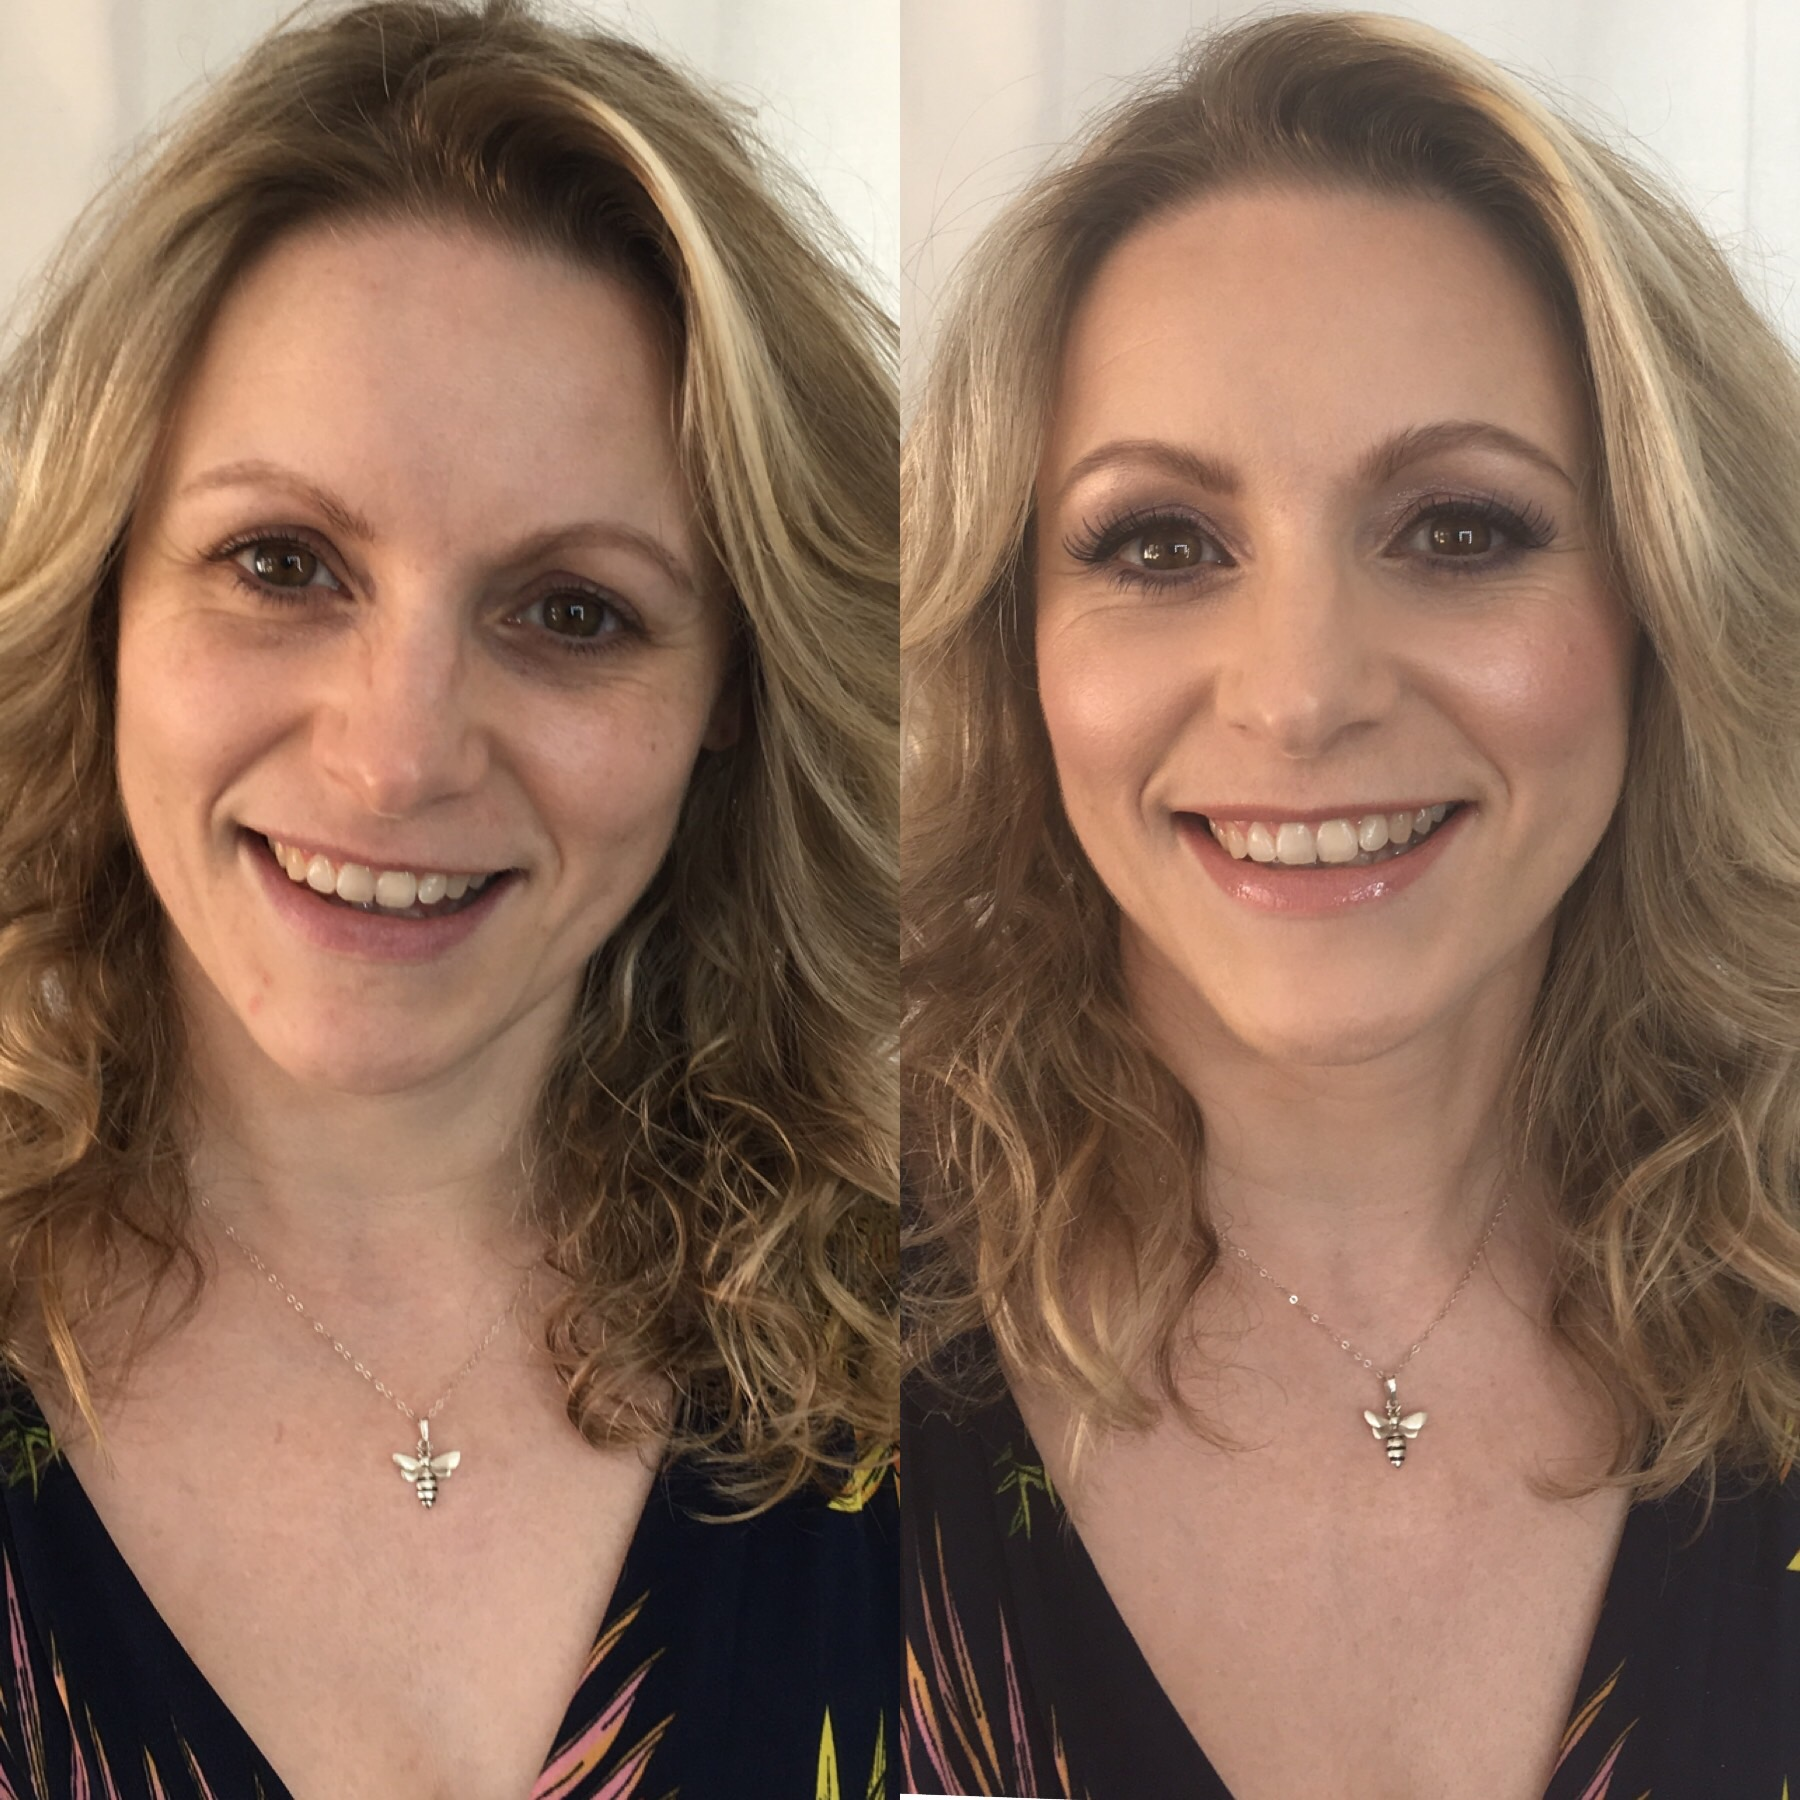 Samantha on her Bridal makeup trial.